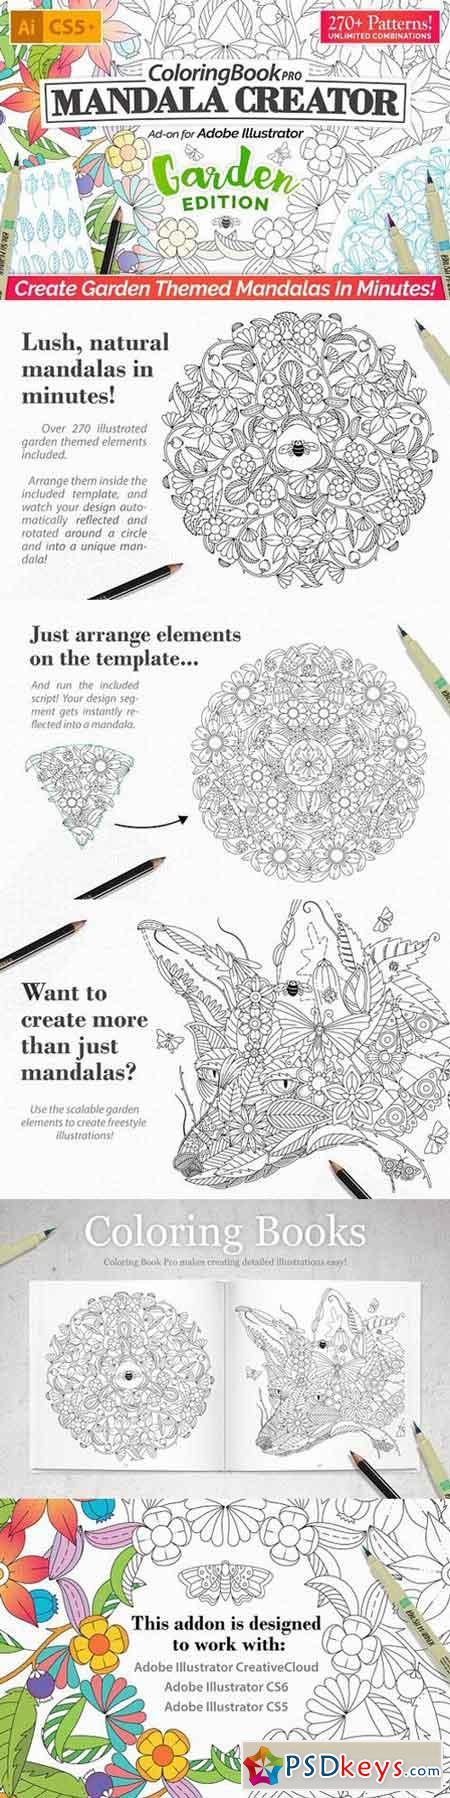 Coloring Book Pro - Garden Edition 1214108 » Free Download Photoshop